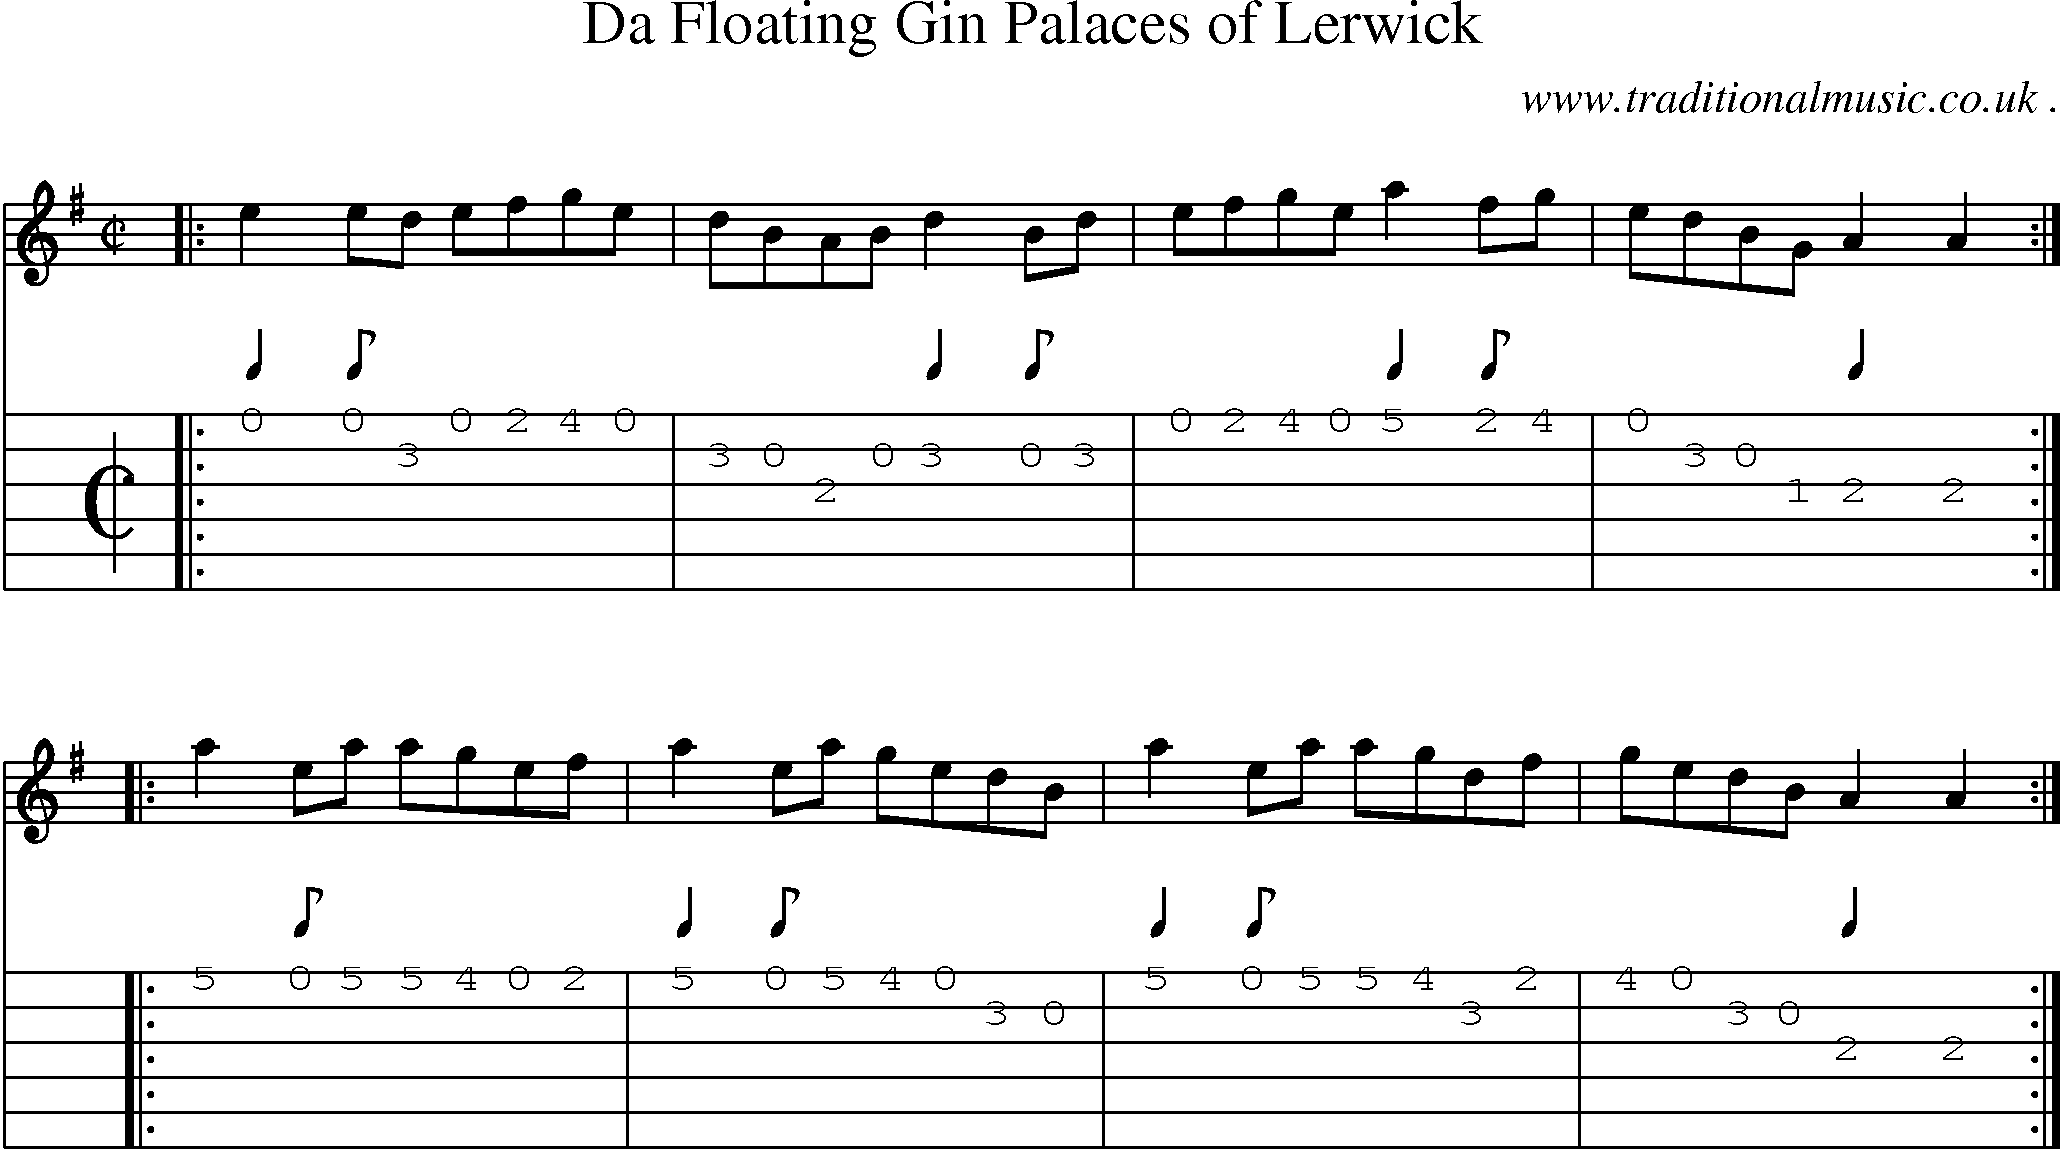 Scottish Tune, Sheetmusic, Midi, Mp3, Guitar chords u0026 tabs: Da Floating Gin Palaces Of Lerwick